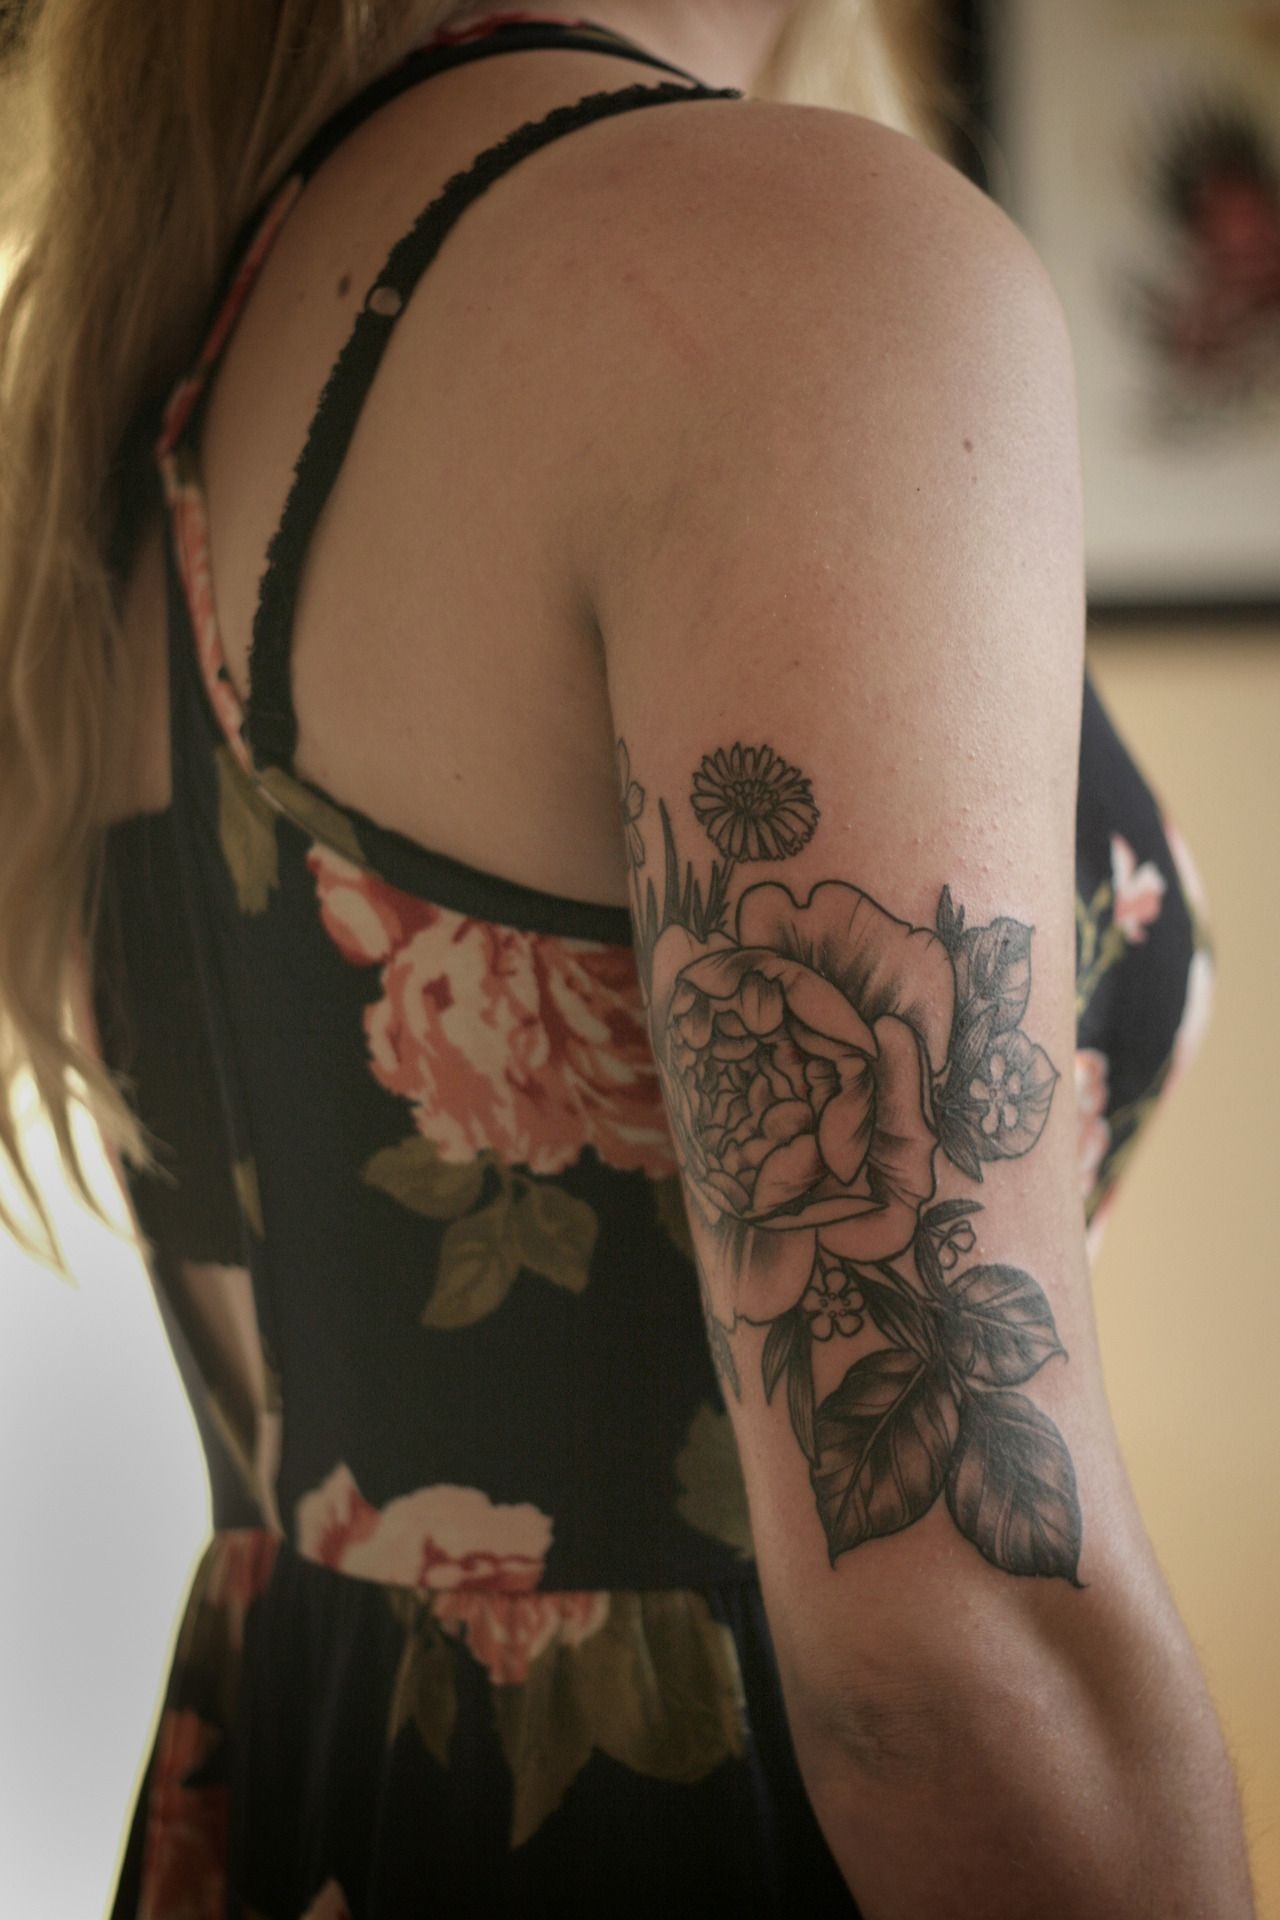 Roses tattoo shoulder tumblr 1000 geometric tattoos ideas - Alice Carrier Rose And Wildflower Bouquet